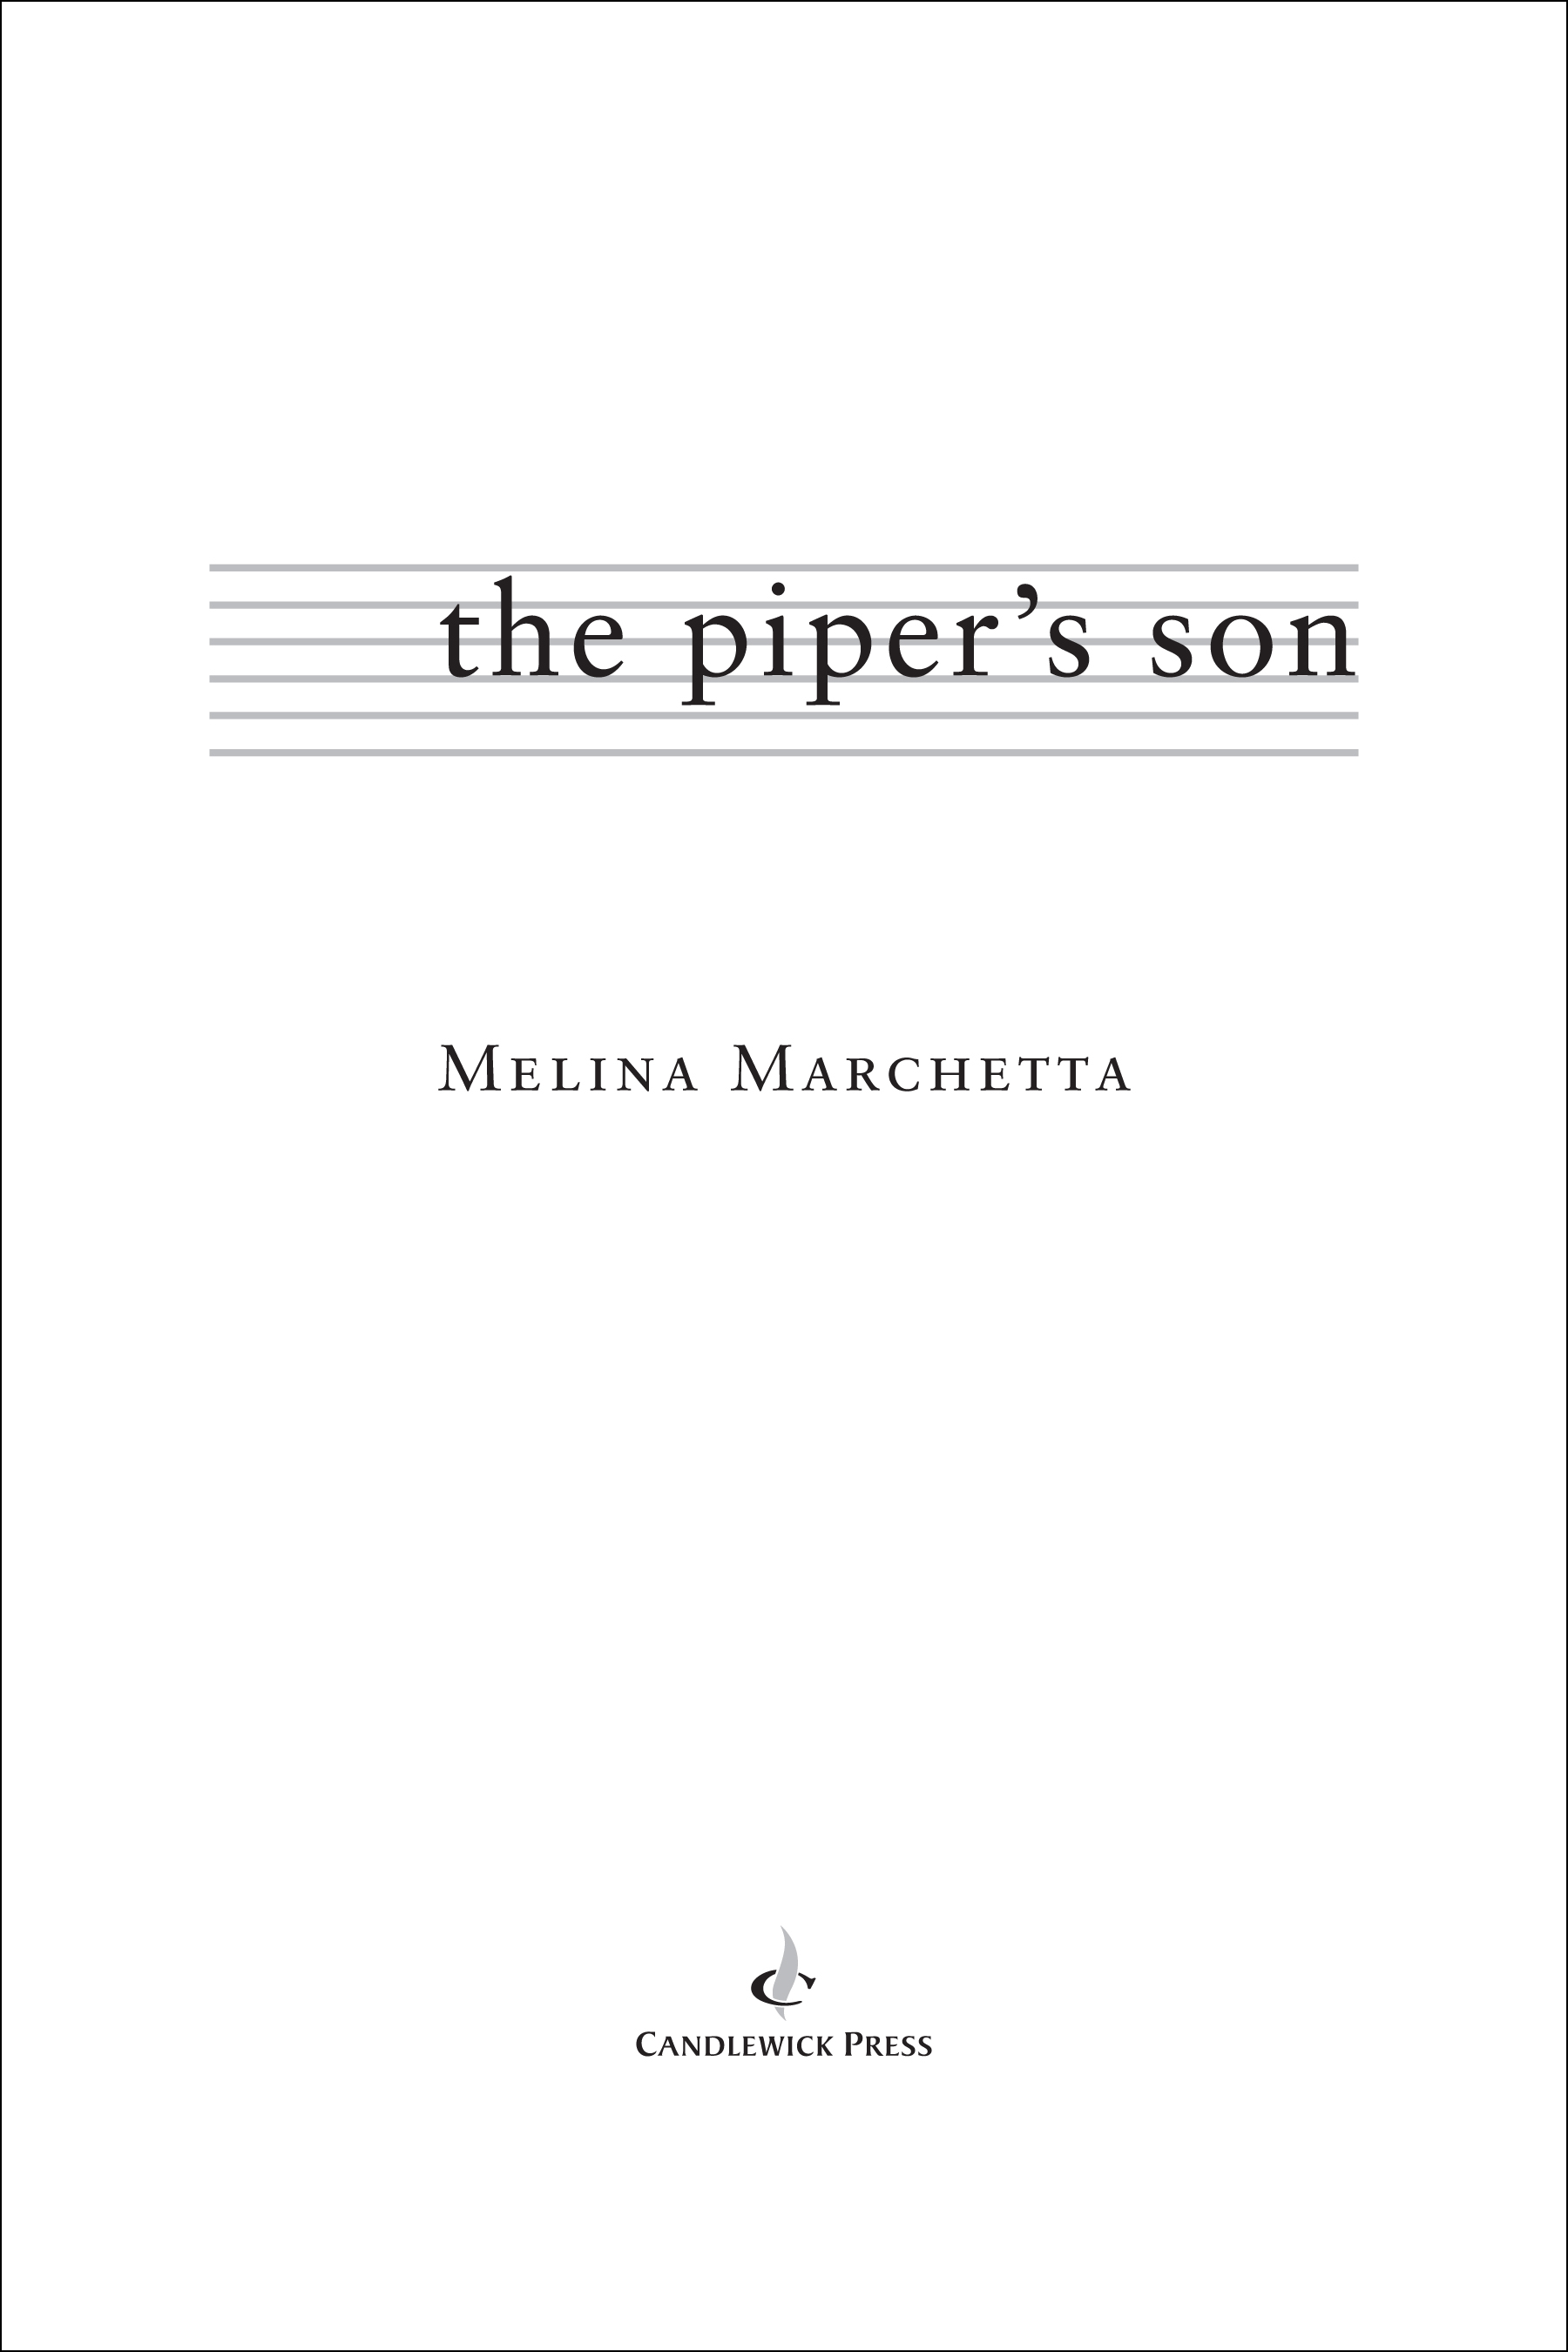 Title page for THE PIPER'S SON